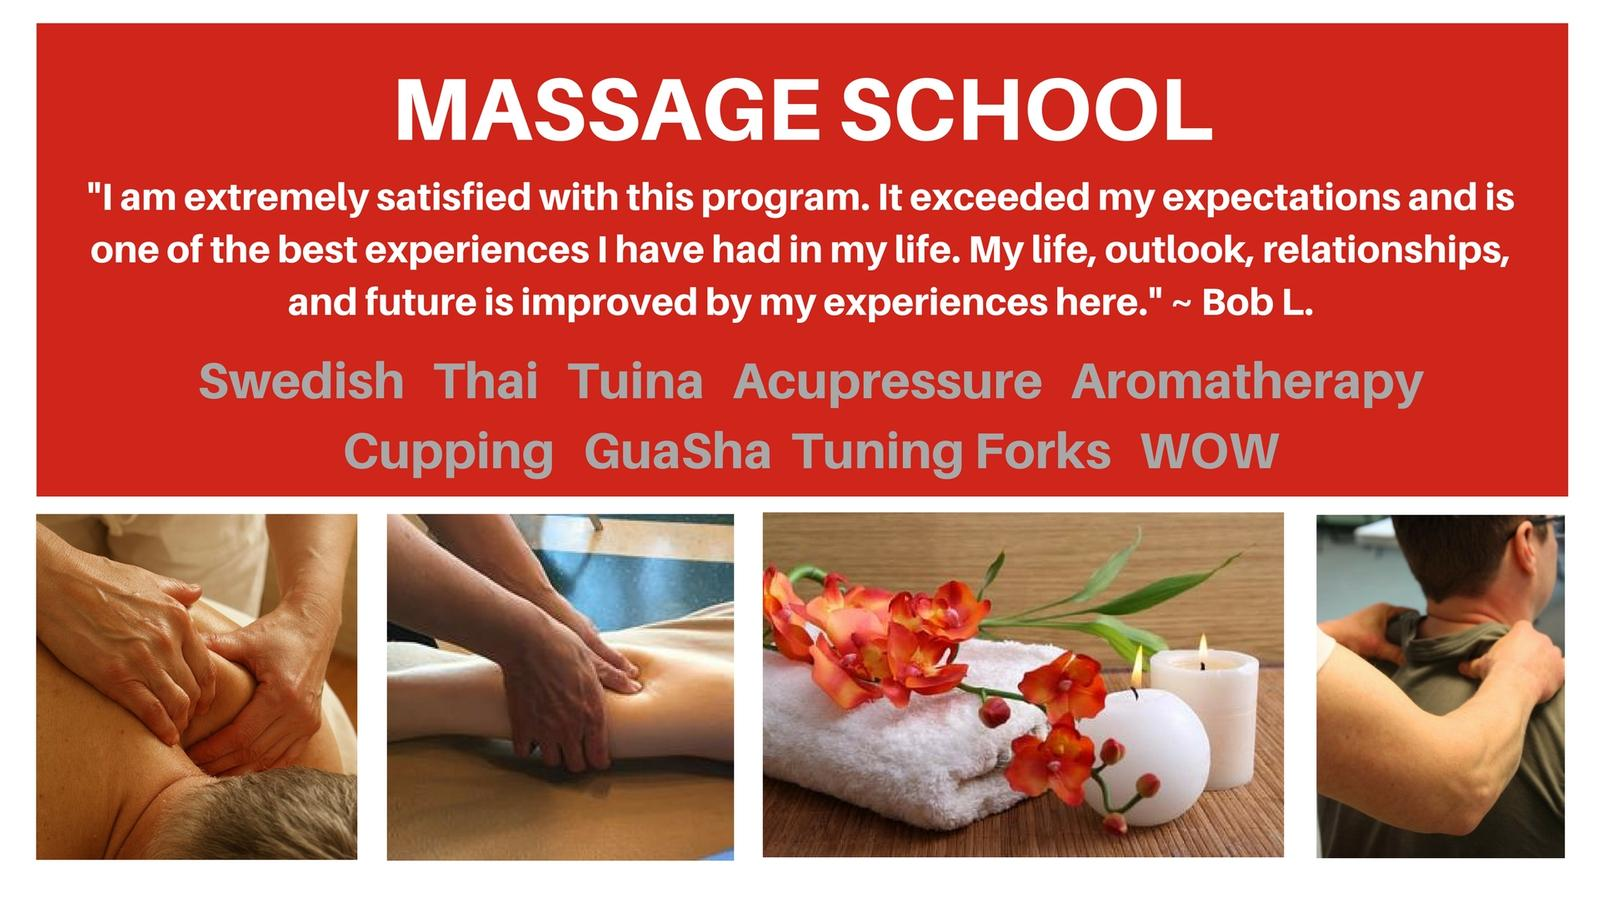 Massage Therapy and Thai Massage Programs